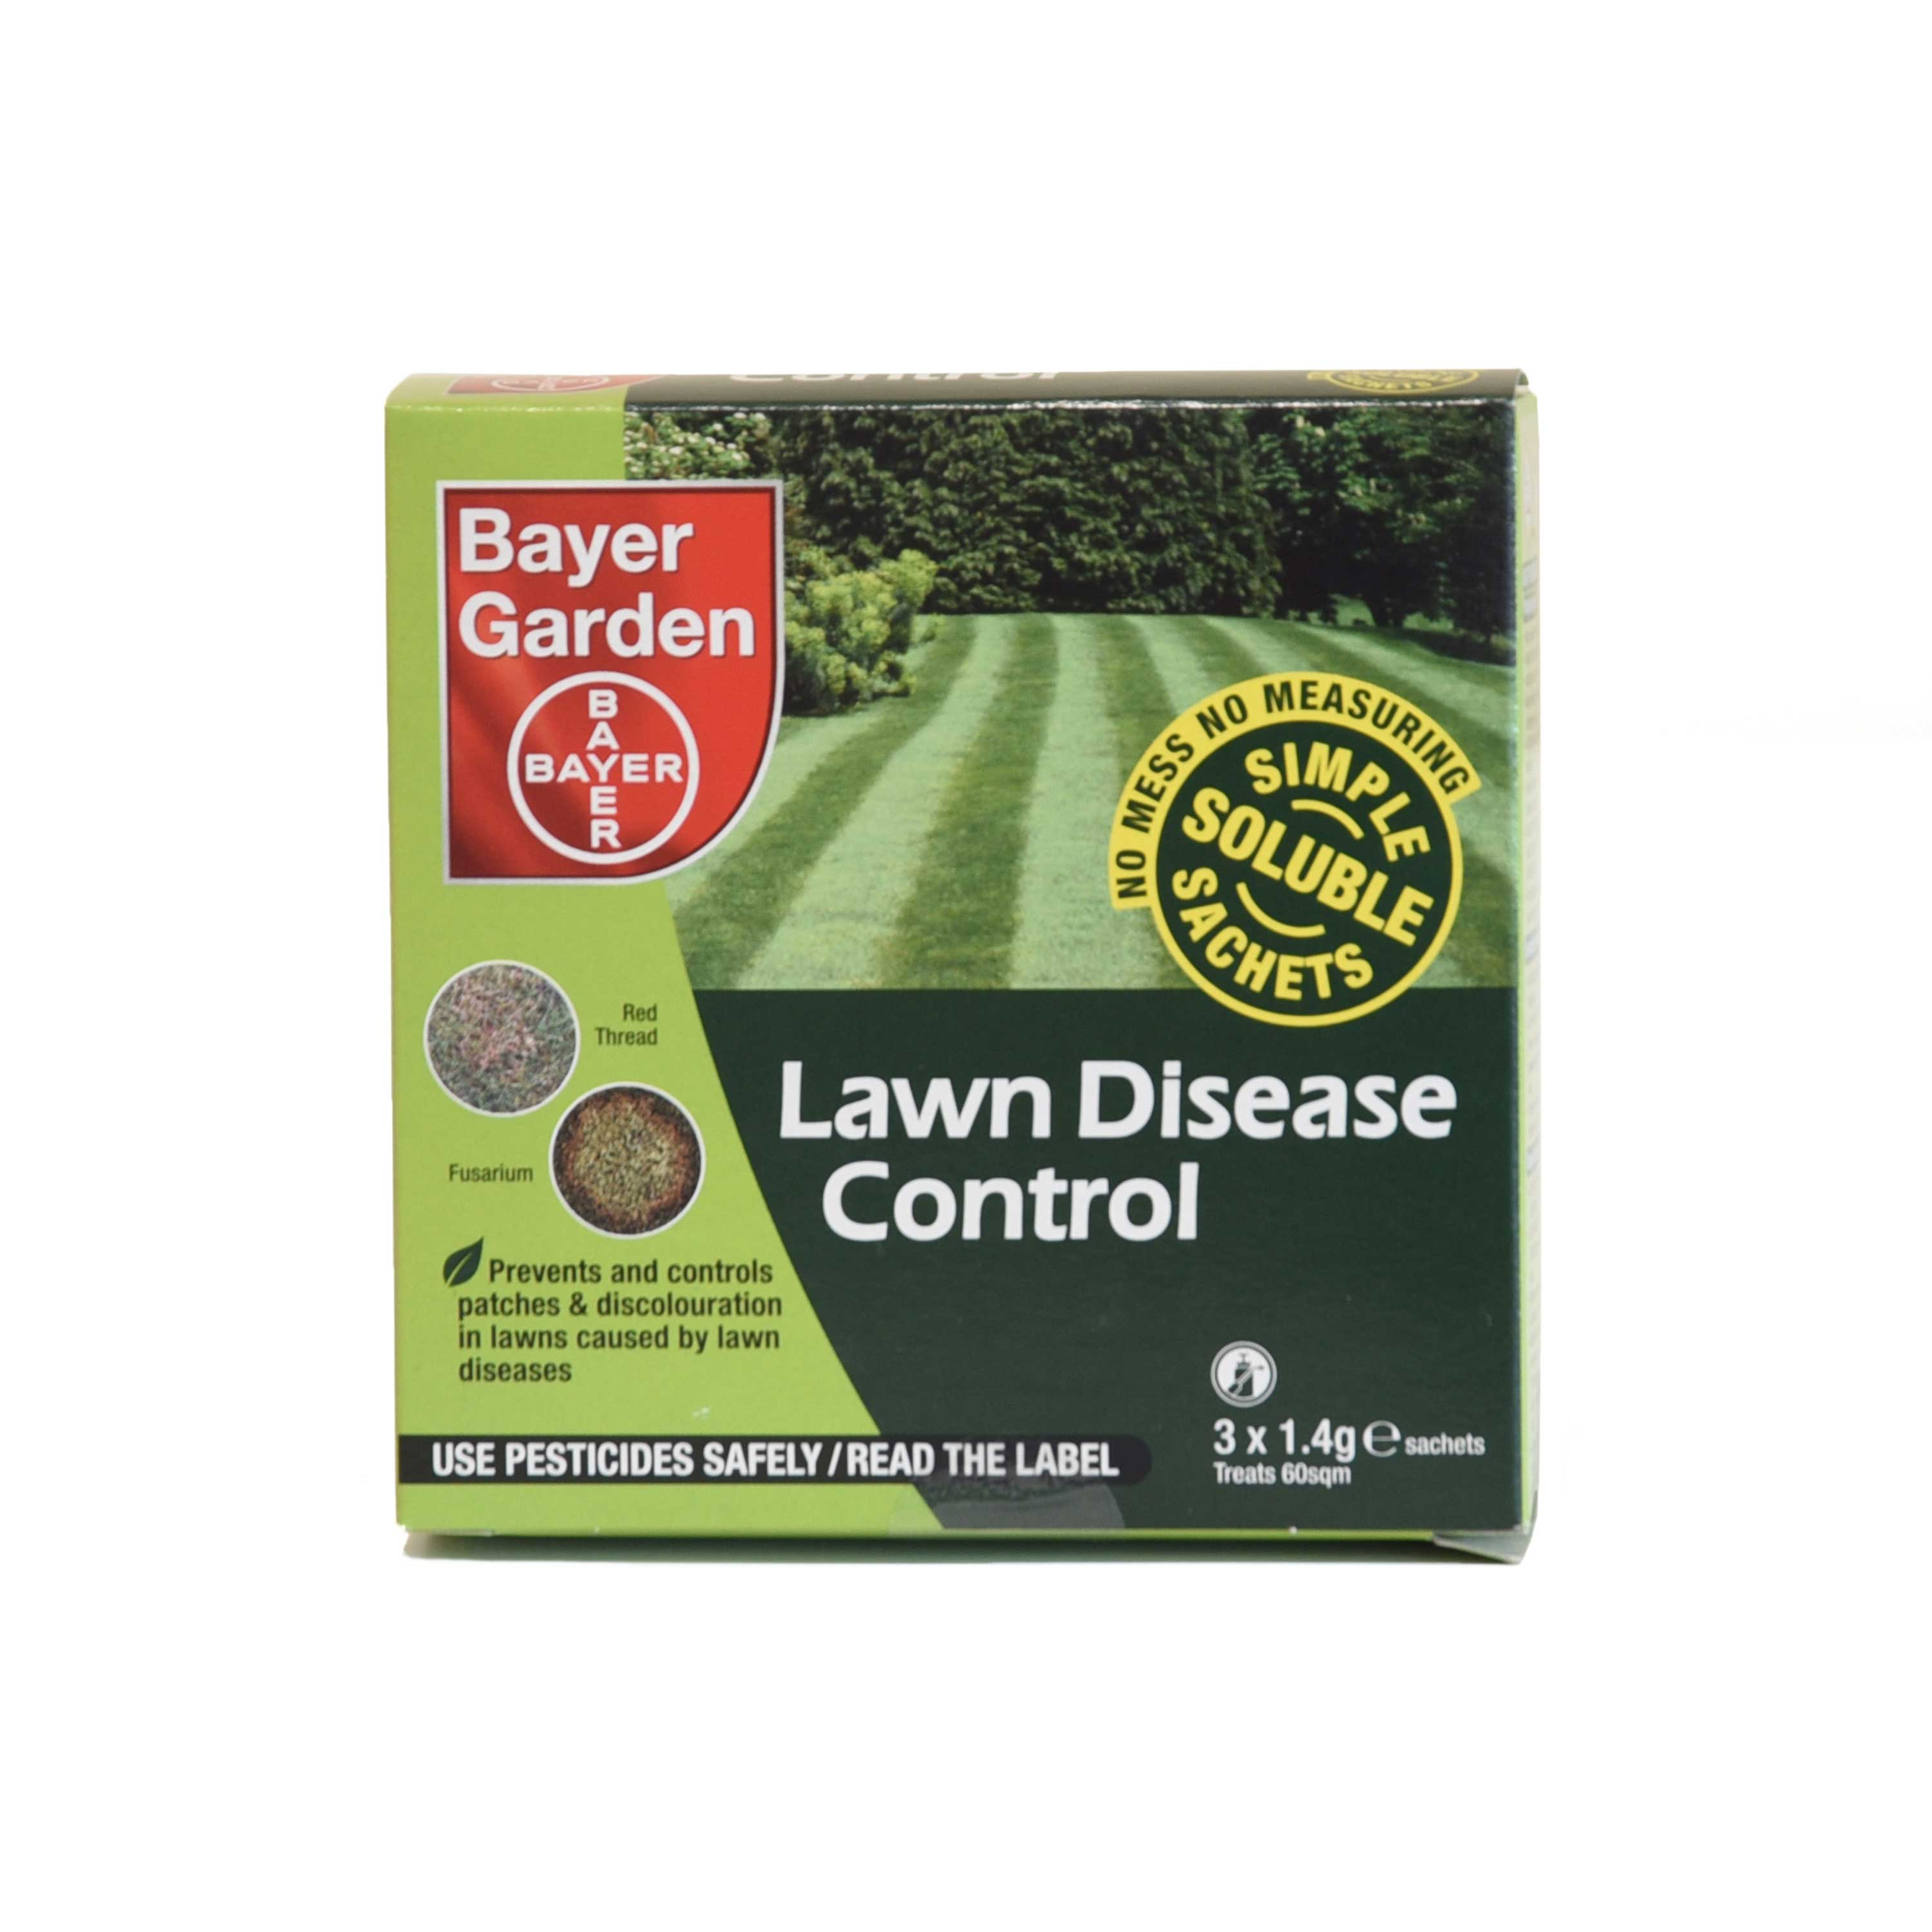 New products at gardens and homes direct garden and gardener for Bayer garden